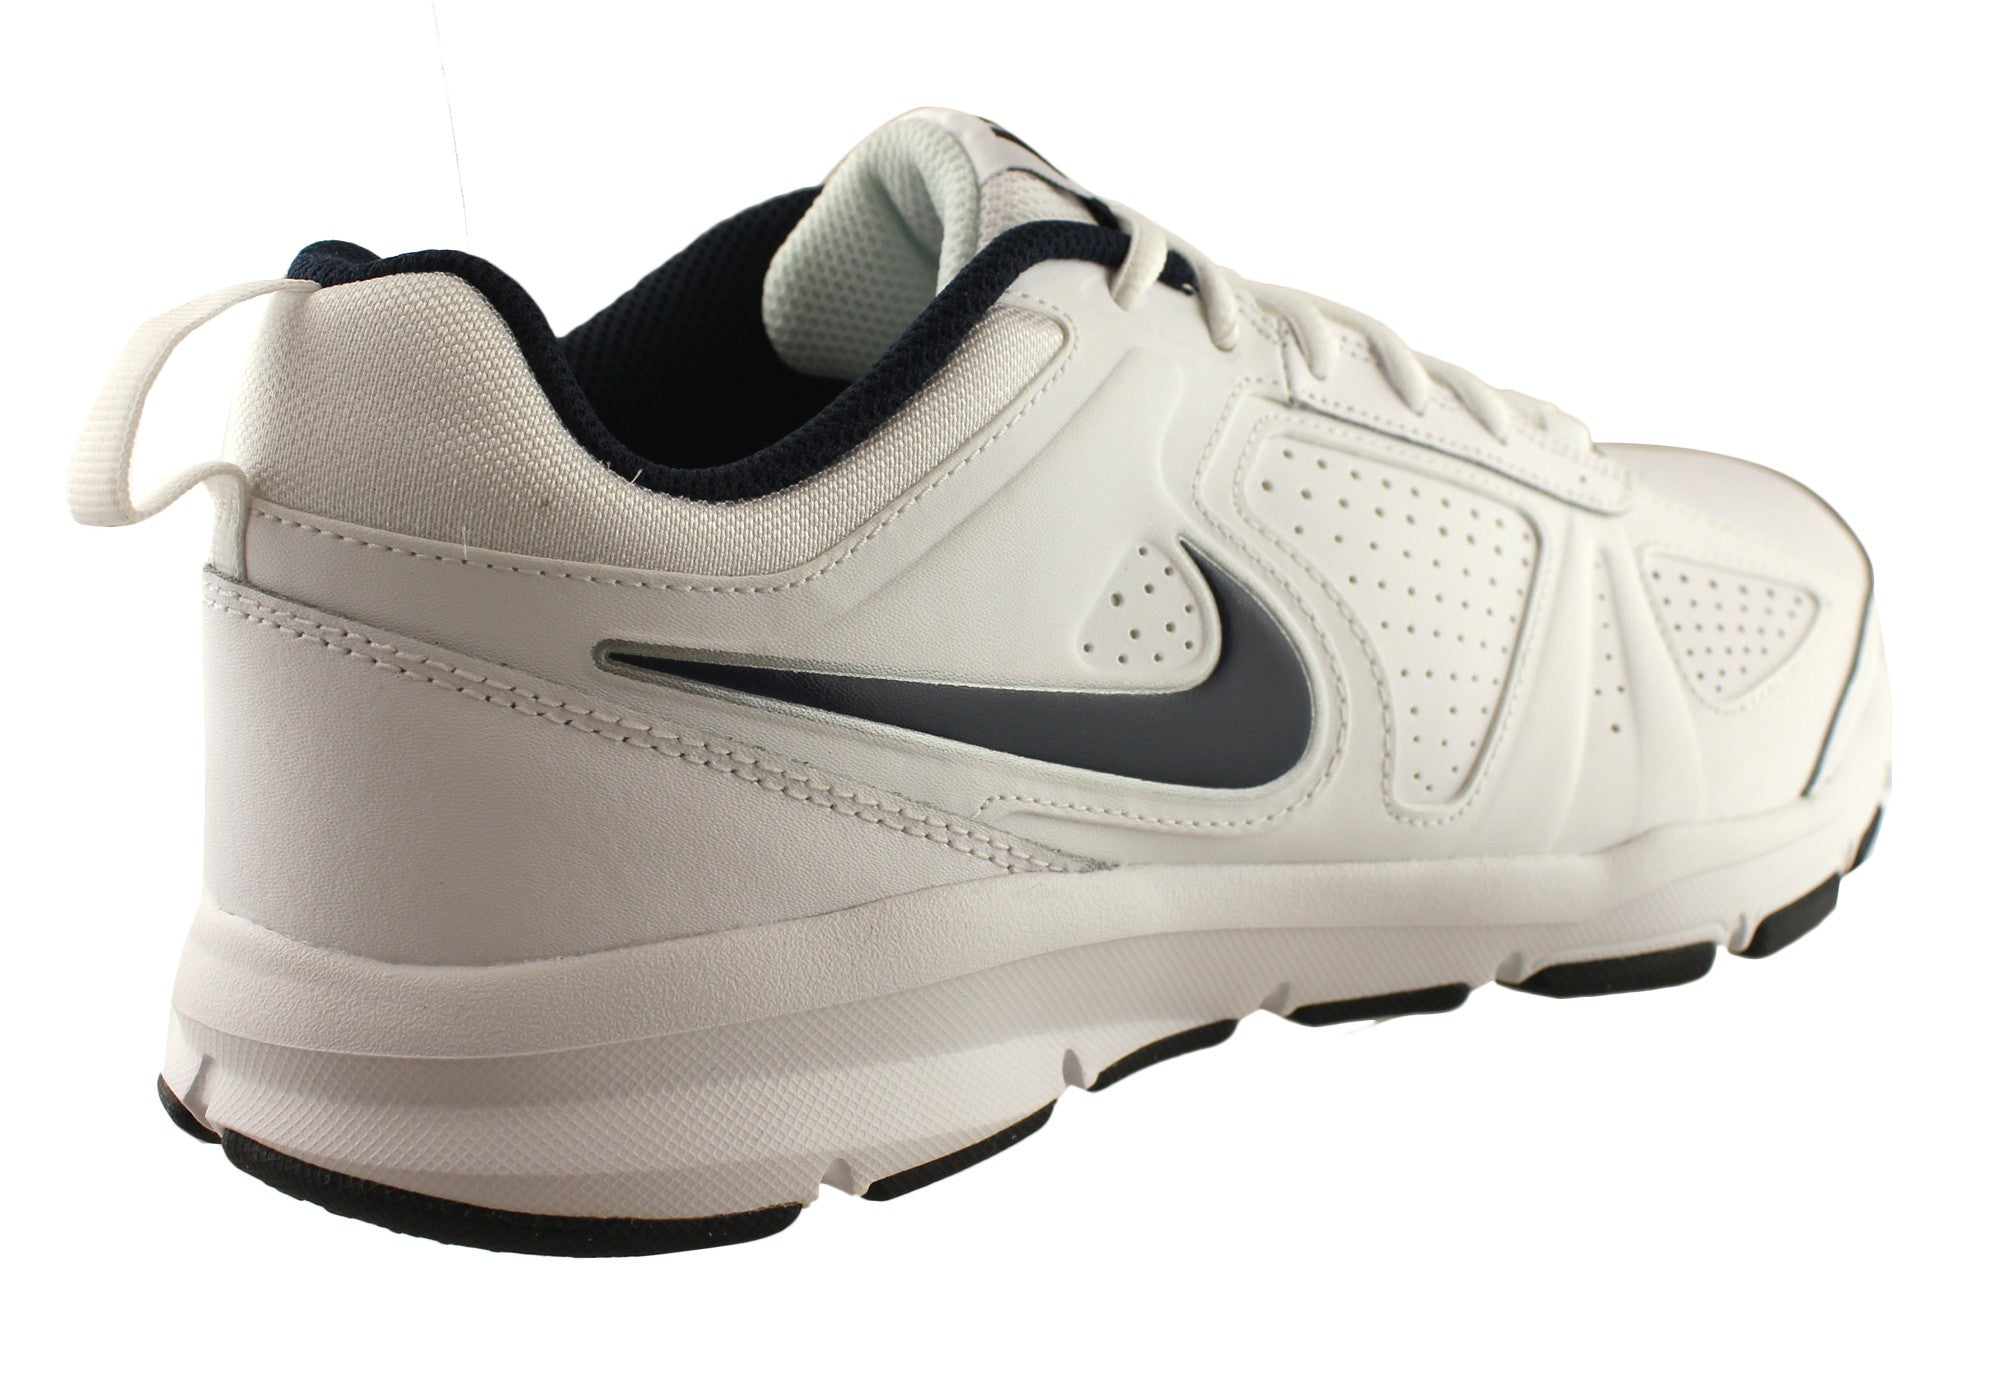 nike 4e wide shoes